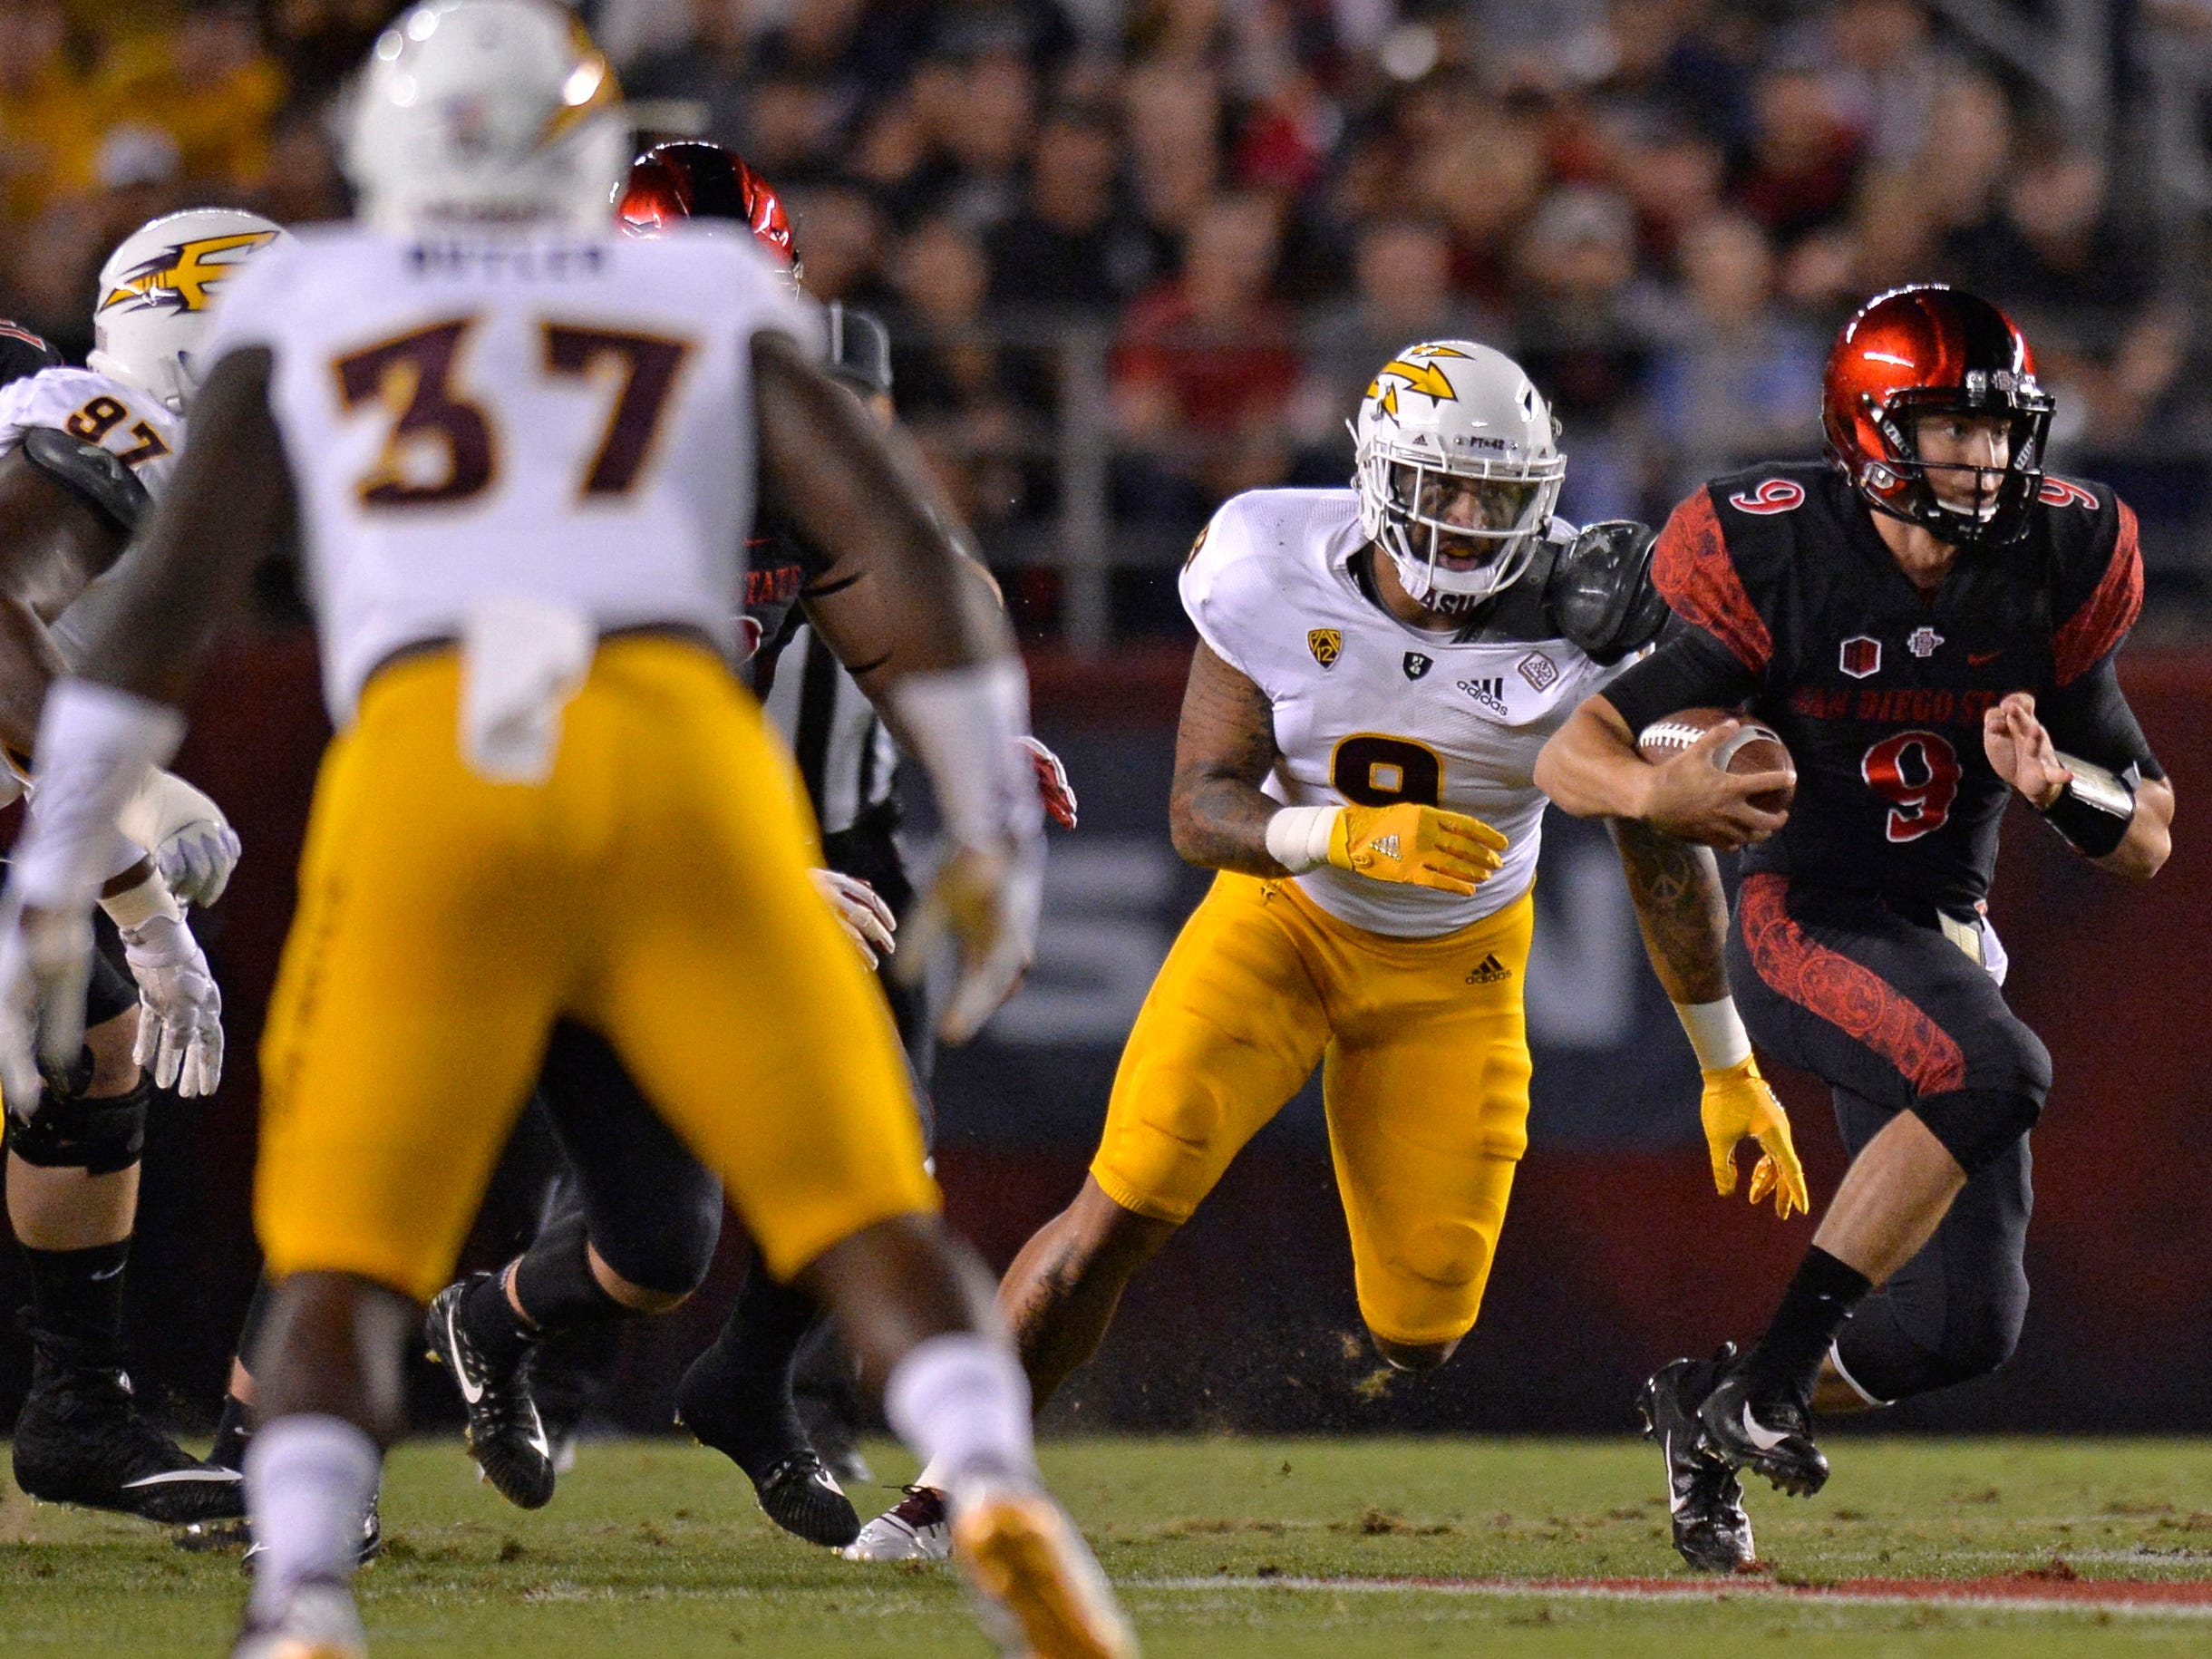 Sep 15, 2018; San Diego, CA, USA; San Diego State Aztecs quarterback Ryan Agnew (right) is chased by Arizona State Sun Devils linebacker Jay Jay Wilson (9) during the first quarter at SDCCU Stadium. Mandatory Credit: Jake Roth-USA TODAY Sports